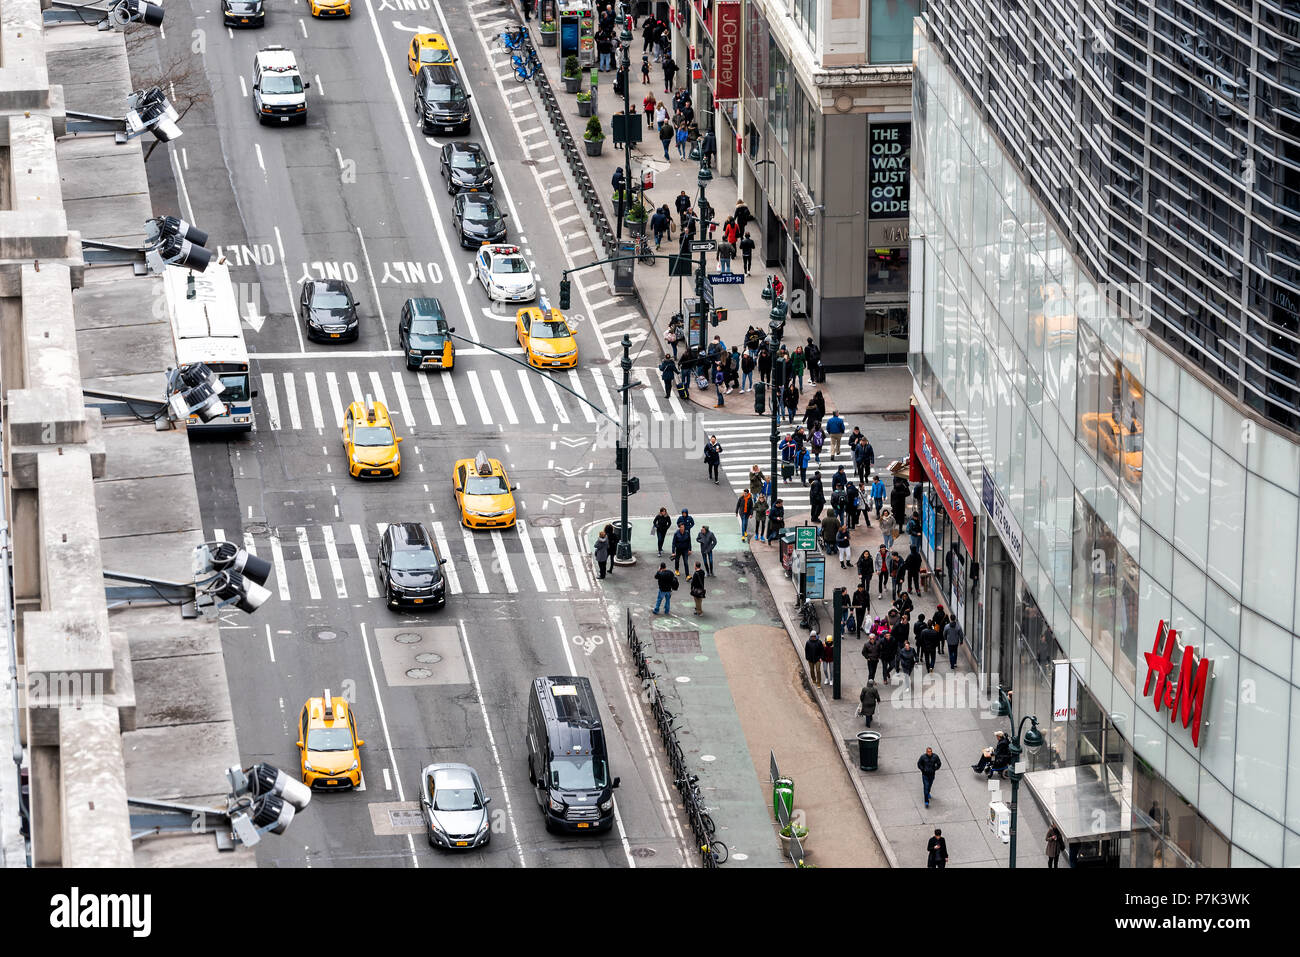 New York City, USA - April 7, 2018: Aerial view of urban building in NYC Herald Square Midtown with security cameras on road 6th avenue street, HM Stock Photo